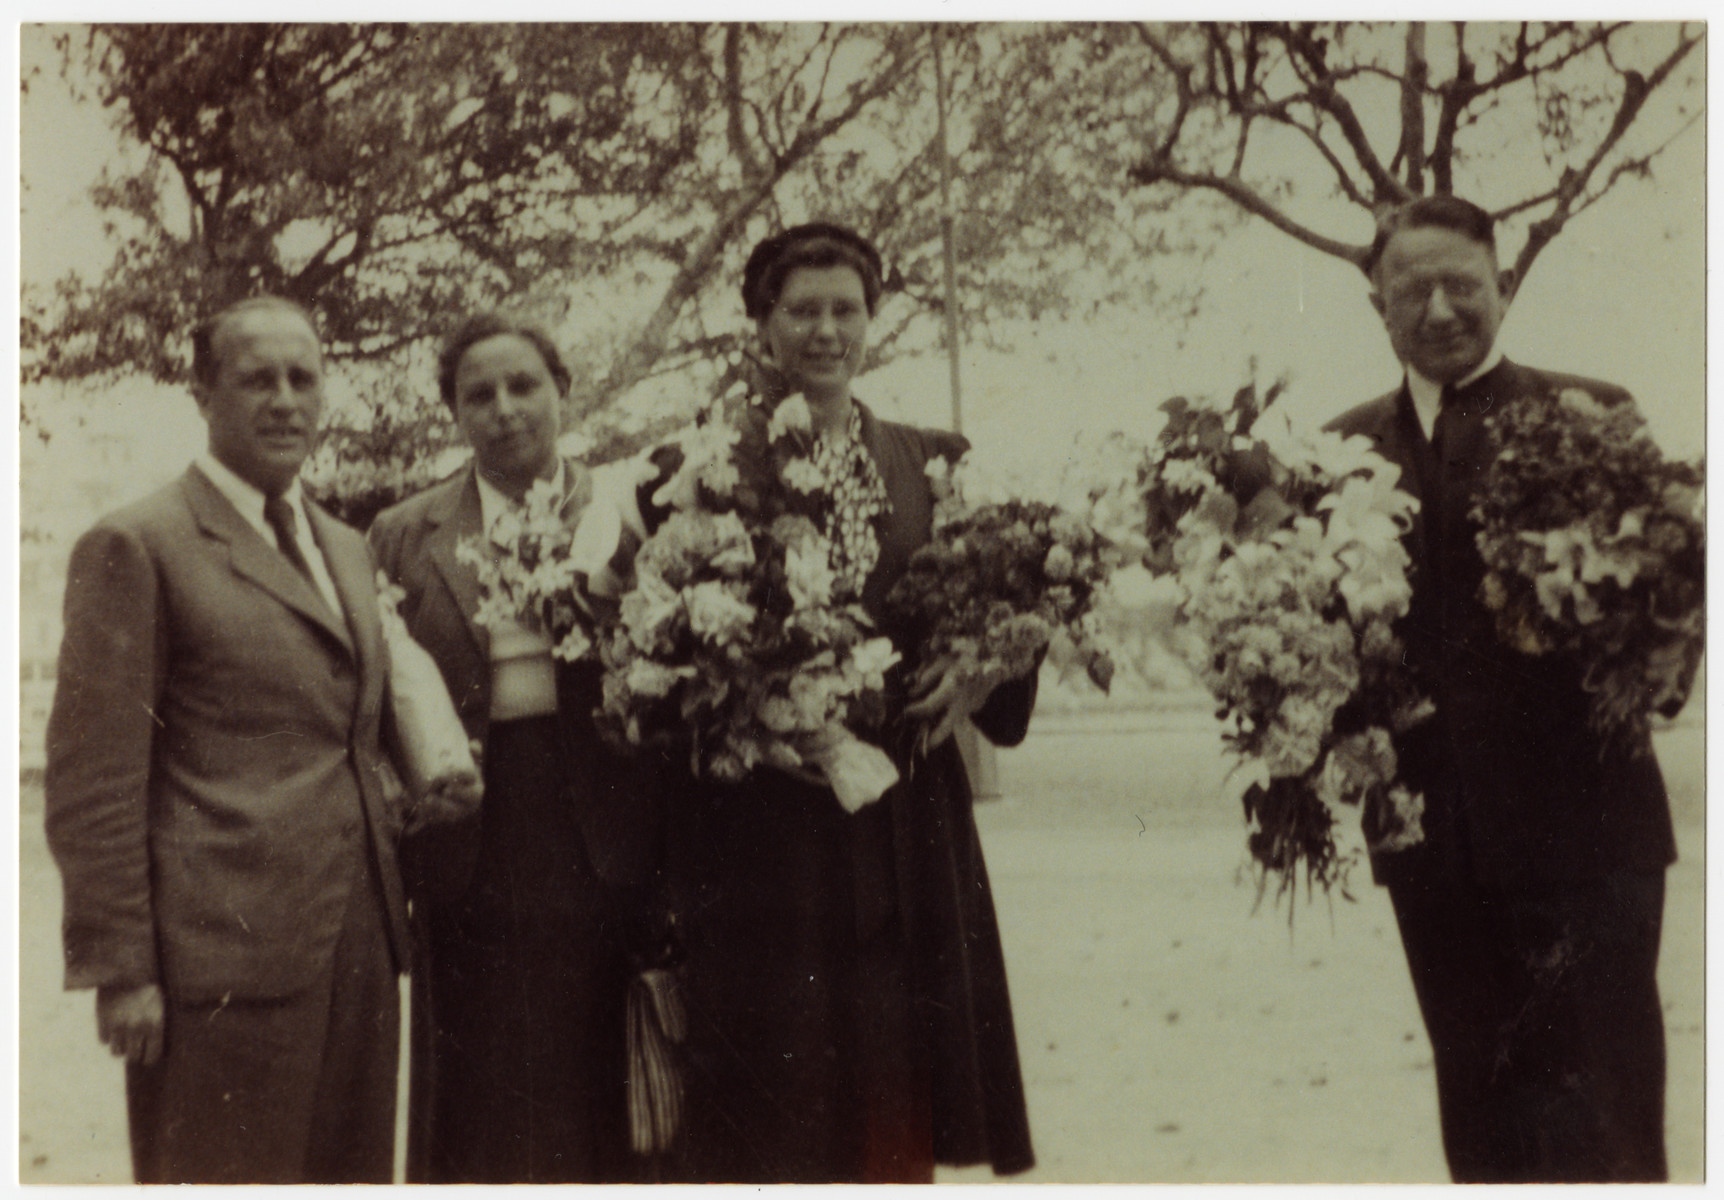 Group portrait of the staff of the Villa Saint Christophe in Canet-Plage.  Lois Gunden is pictured third from the left.  Augustin Coma is on the far left.  Next to him is Mme. Pepita and Joseph Byler is on the right.